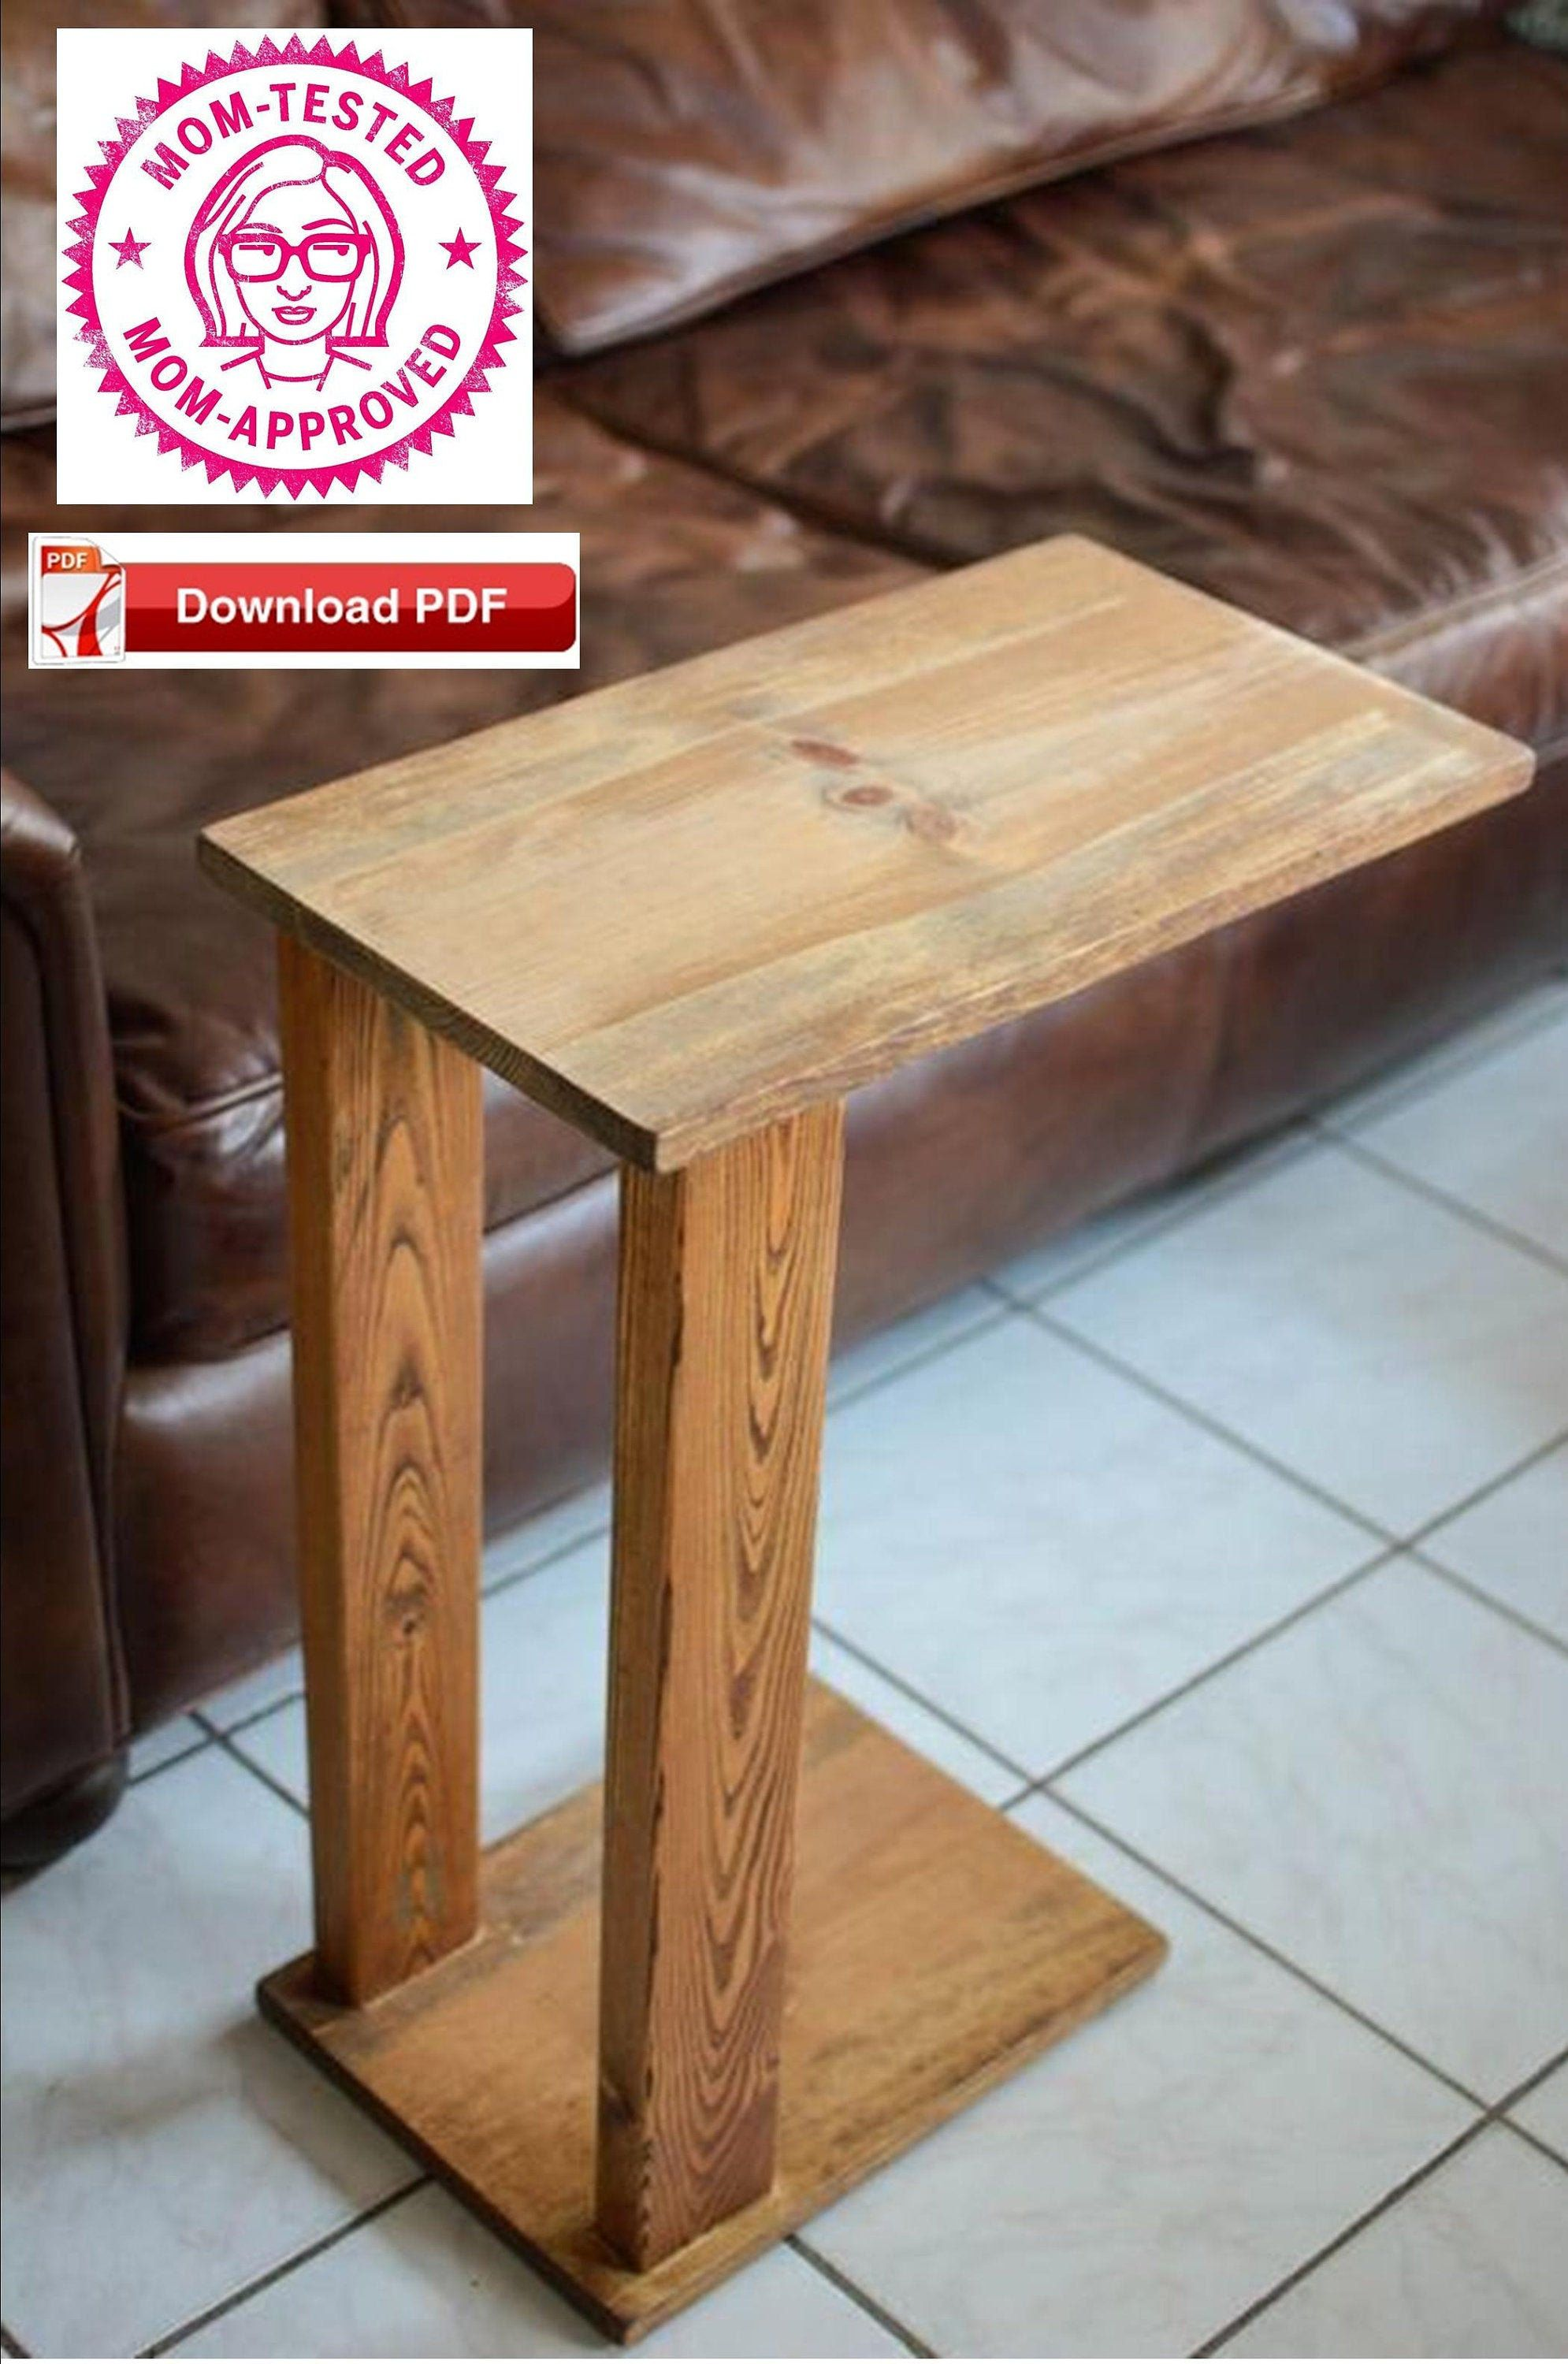 Sofa Stand Plan End Table Plan Rustic Table Plan Tv Stand Plan Couch Table Plan Drink Table Plan Dorm Room Table Plan Bunk Bed Table Plan End Table Plans Dinner Table Diy Couch Table